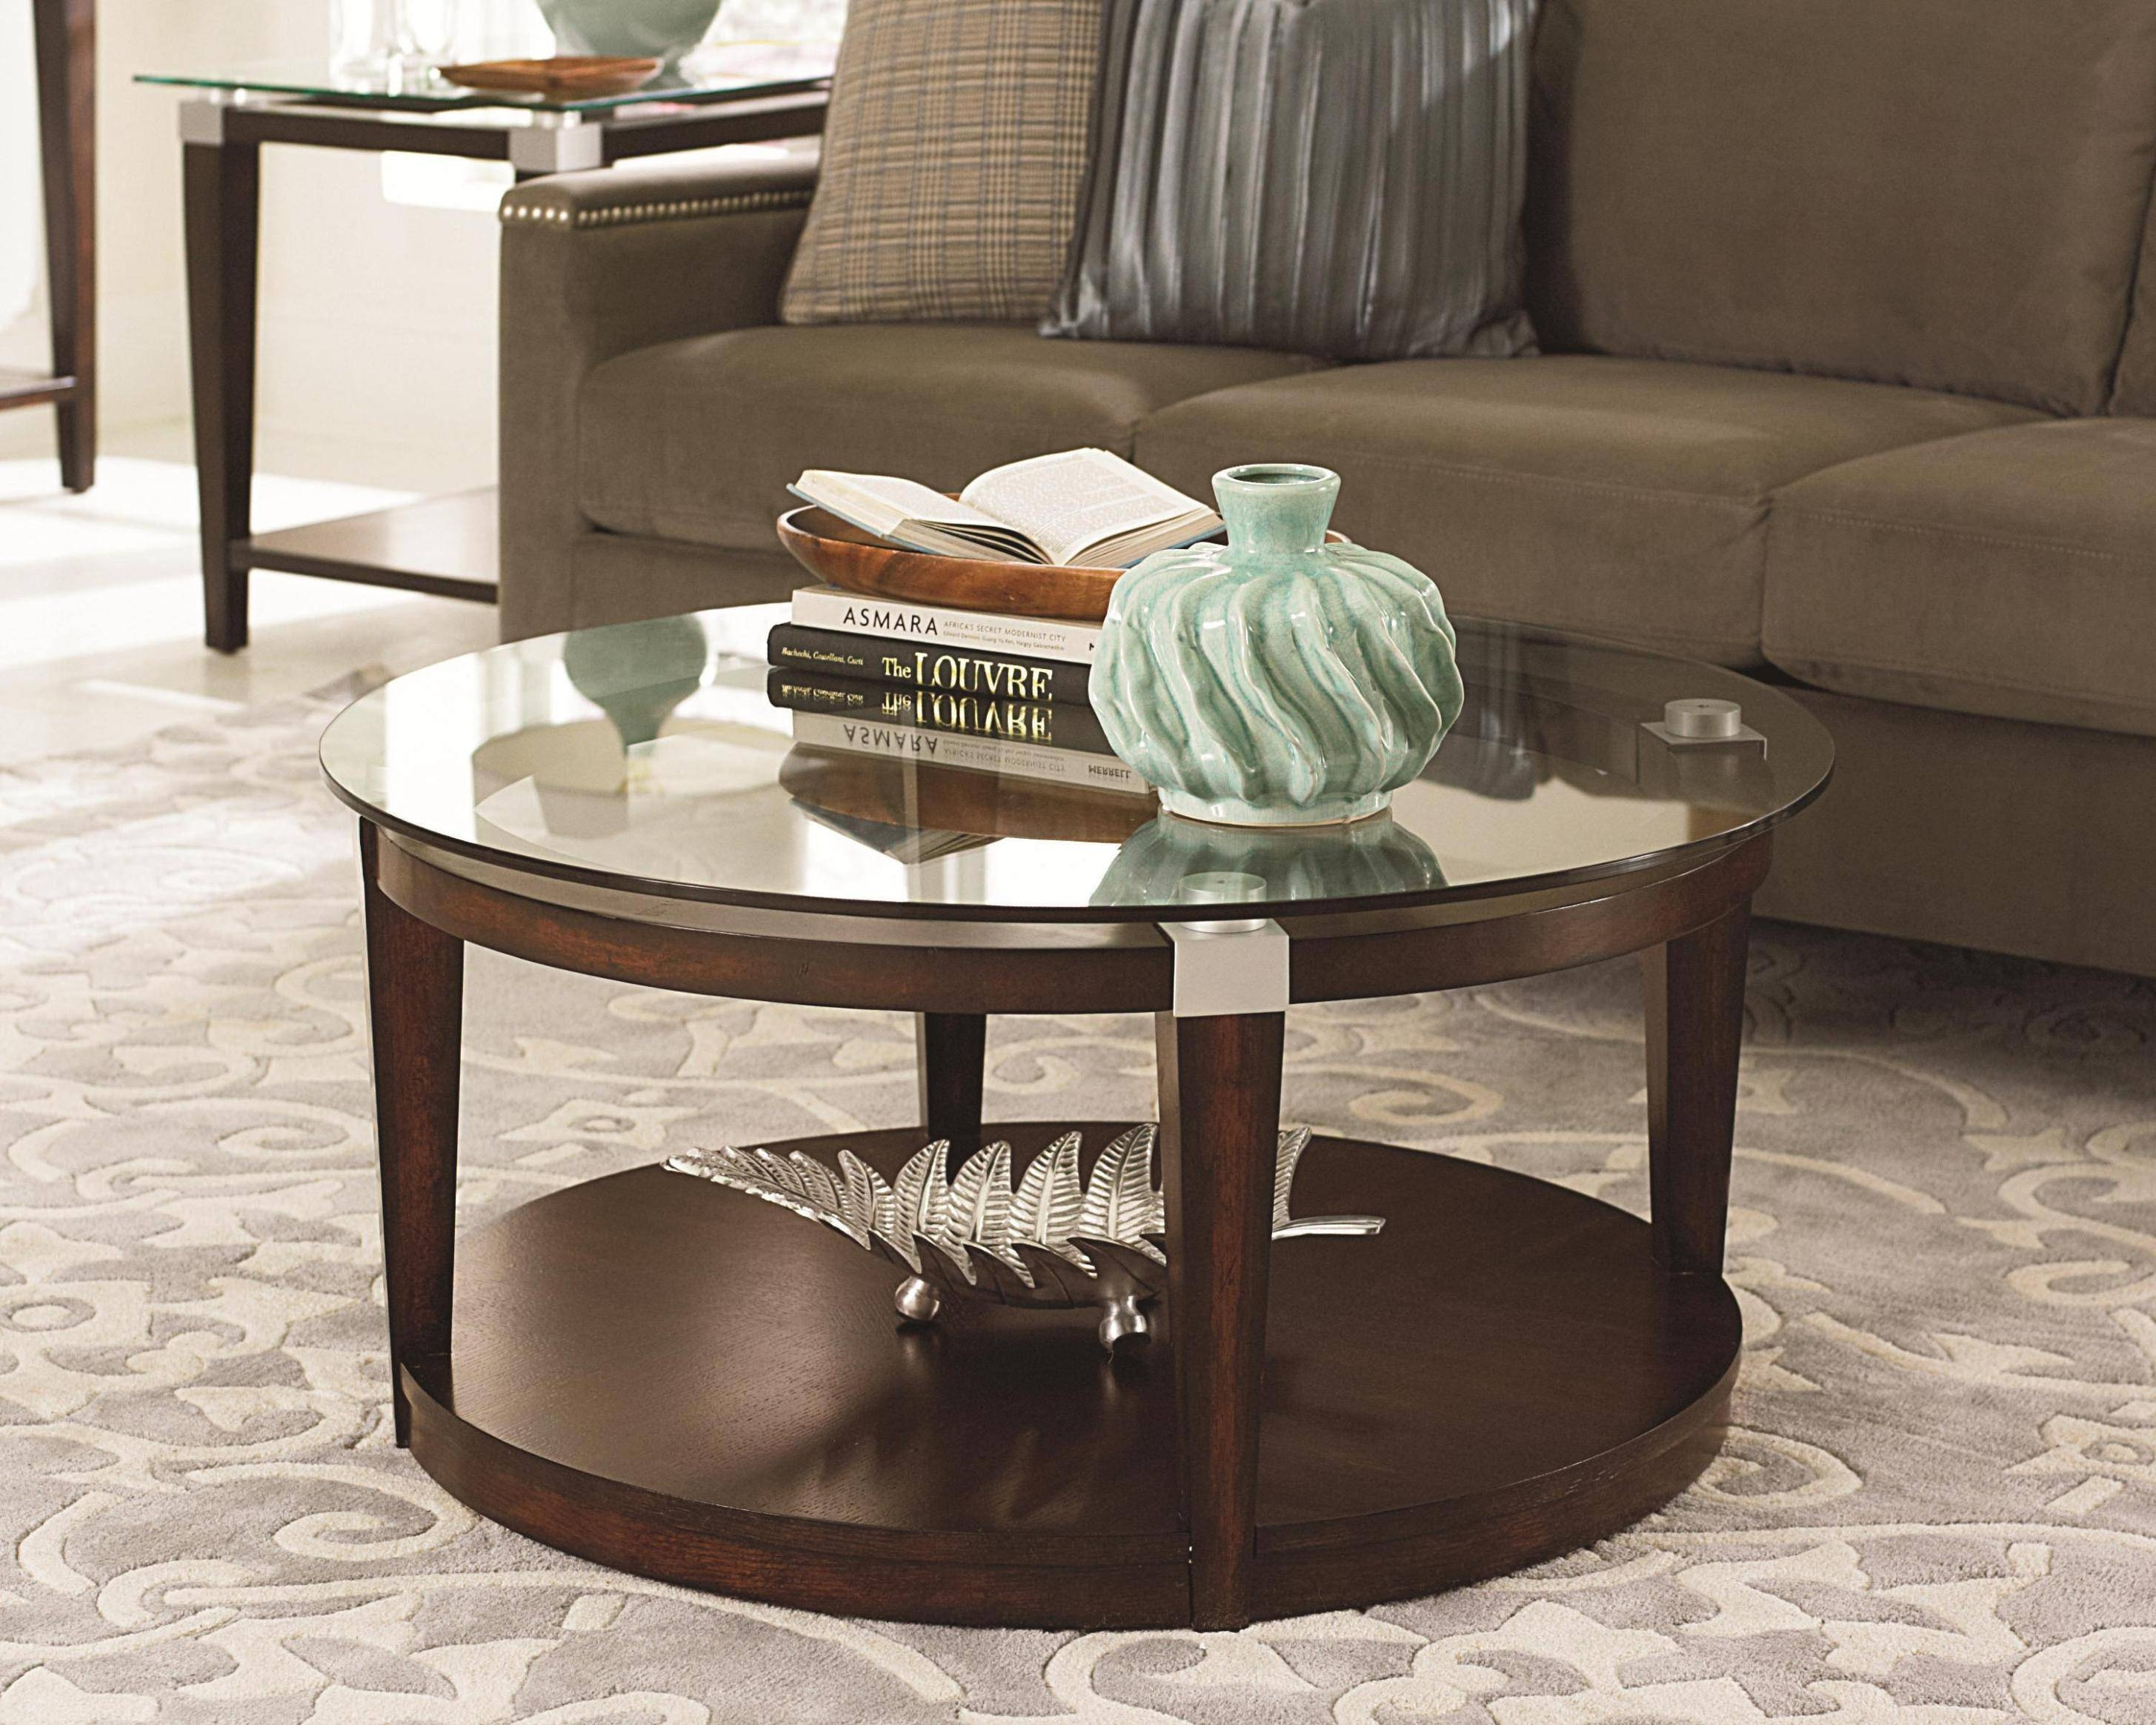 Small Circular Coffee Table Thick Round Glass Table Top, High for Round Glass Coffee Tables (Image 25 of 30)